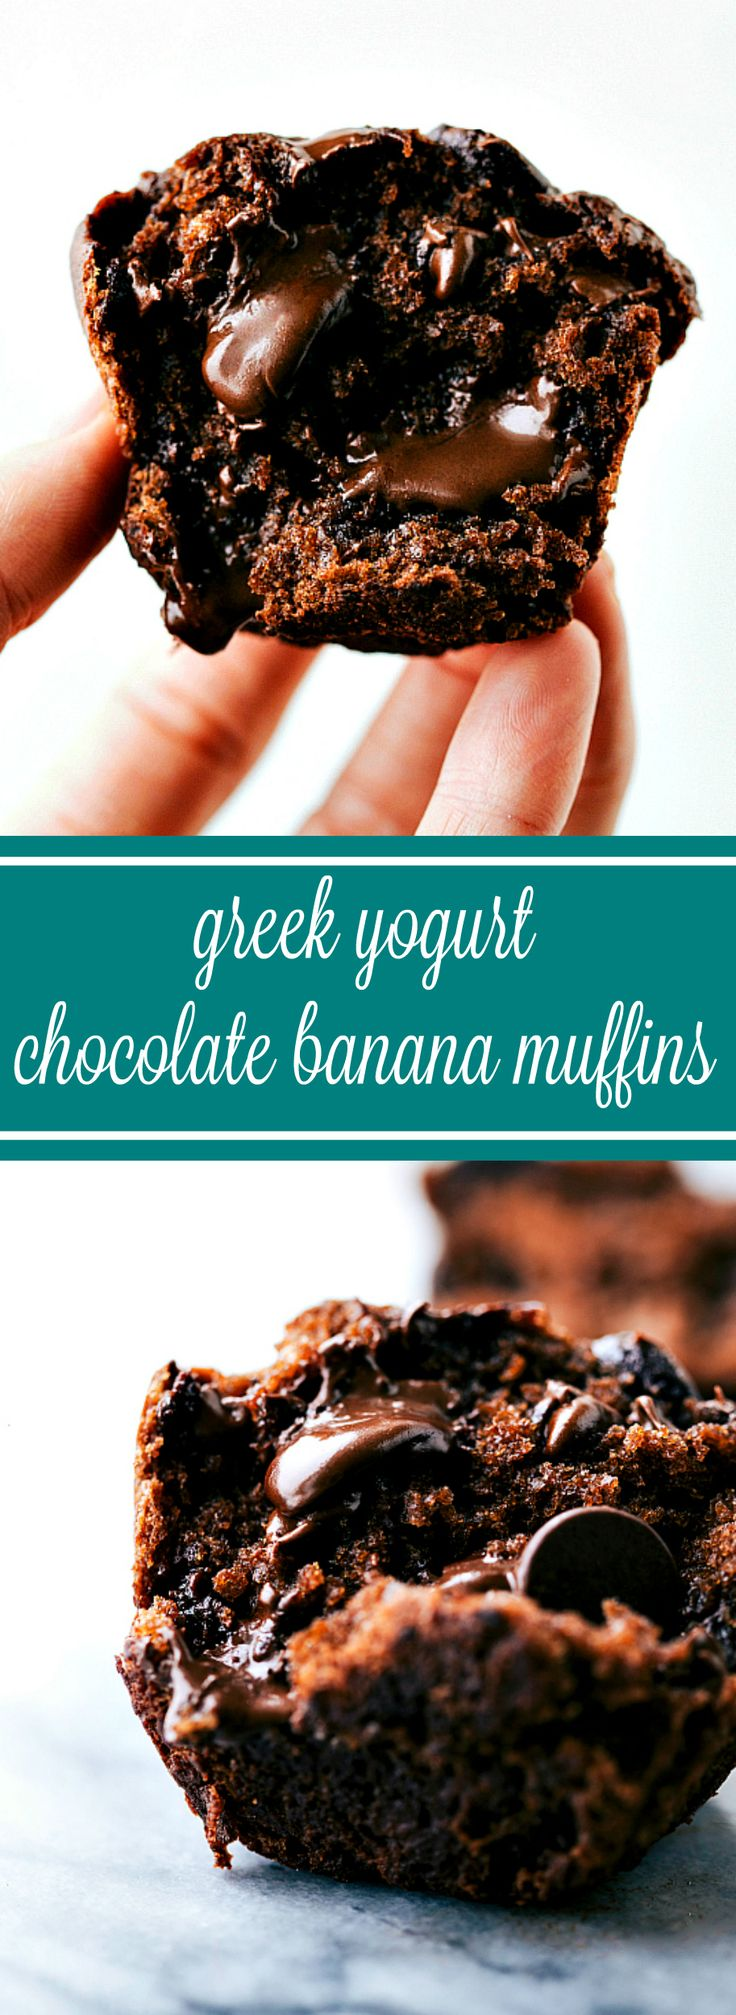 Delicious Bakery Style Greek Yogurt Chocolate Banana Muffins| healthy recipe ideas @xhealthyrecipex |                                                                                                                                                                                 Más                                                                                                                                                                                 Más